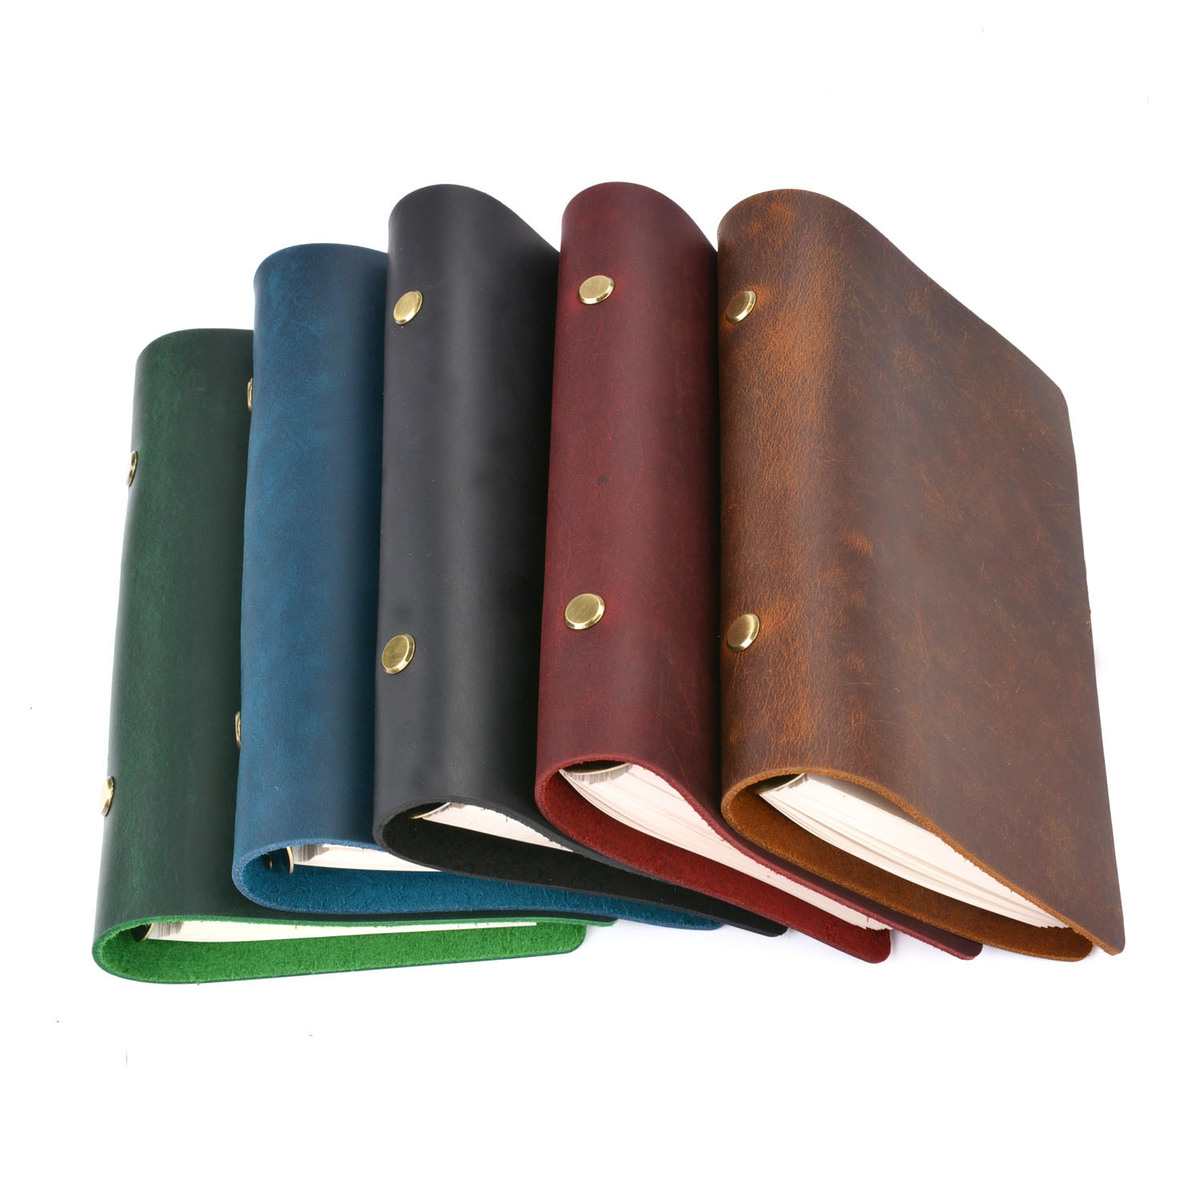 Hot Sale Classic Business Notebook A6 Genuine Leather Cover Loose Leaf Notebook Diary Travel Journal Sketchbook Planner maritime travel log classic vintage retro classic pu leather blank pages copper plated sea anchor and straps sketchbook notebook